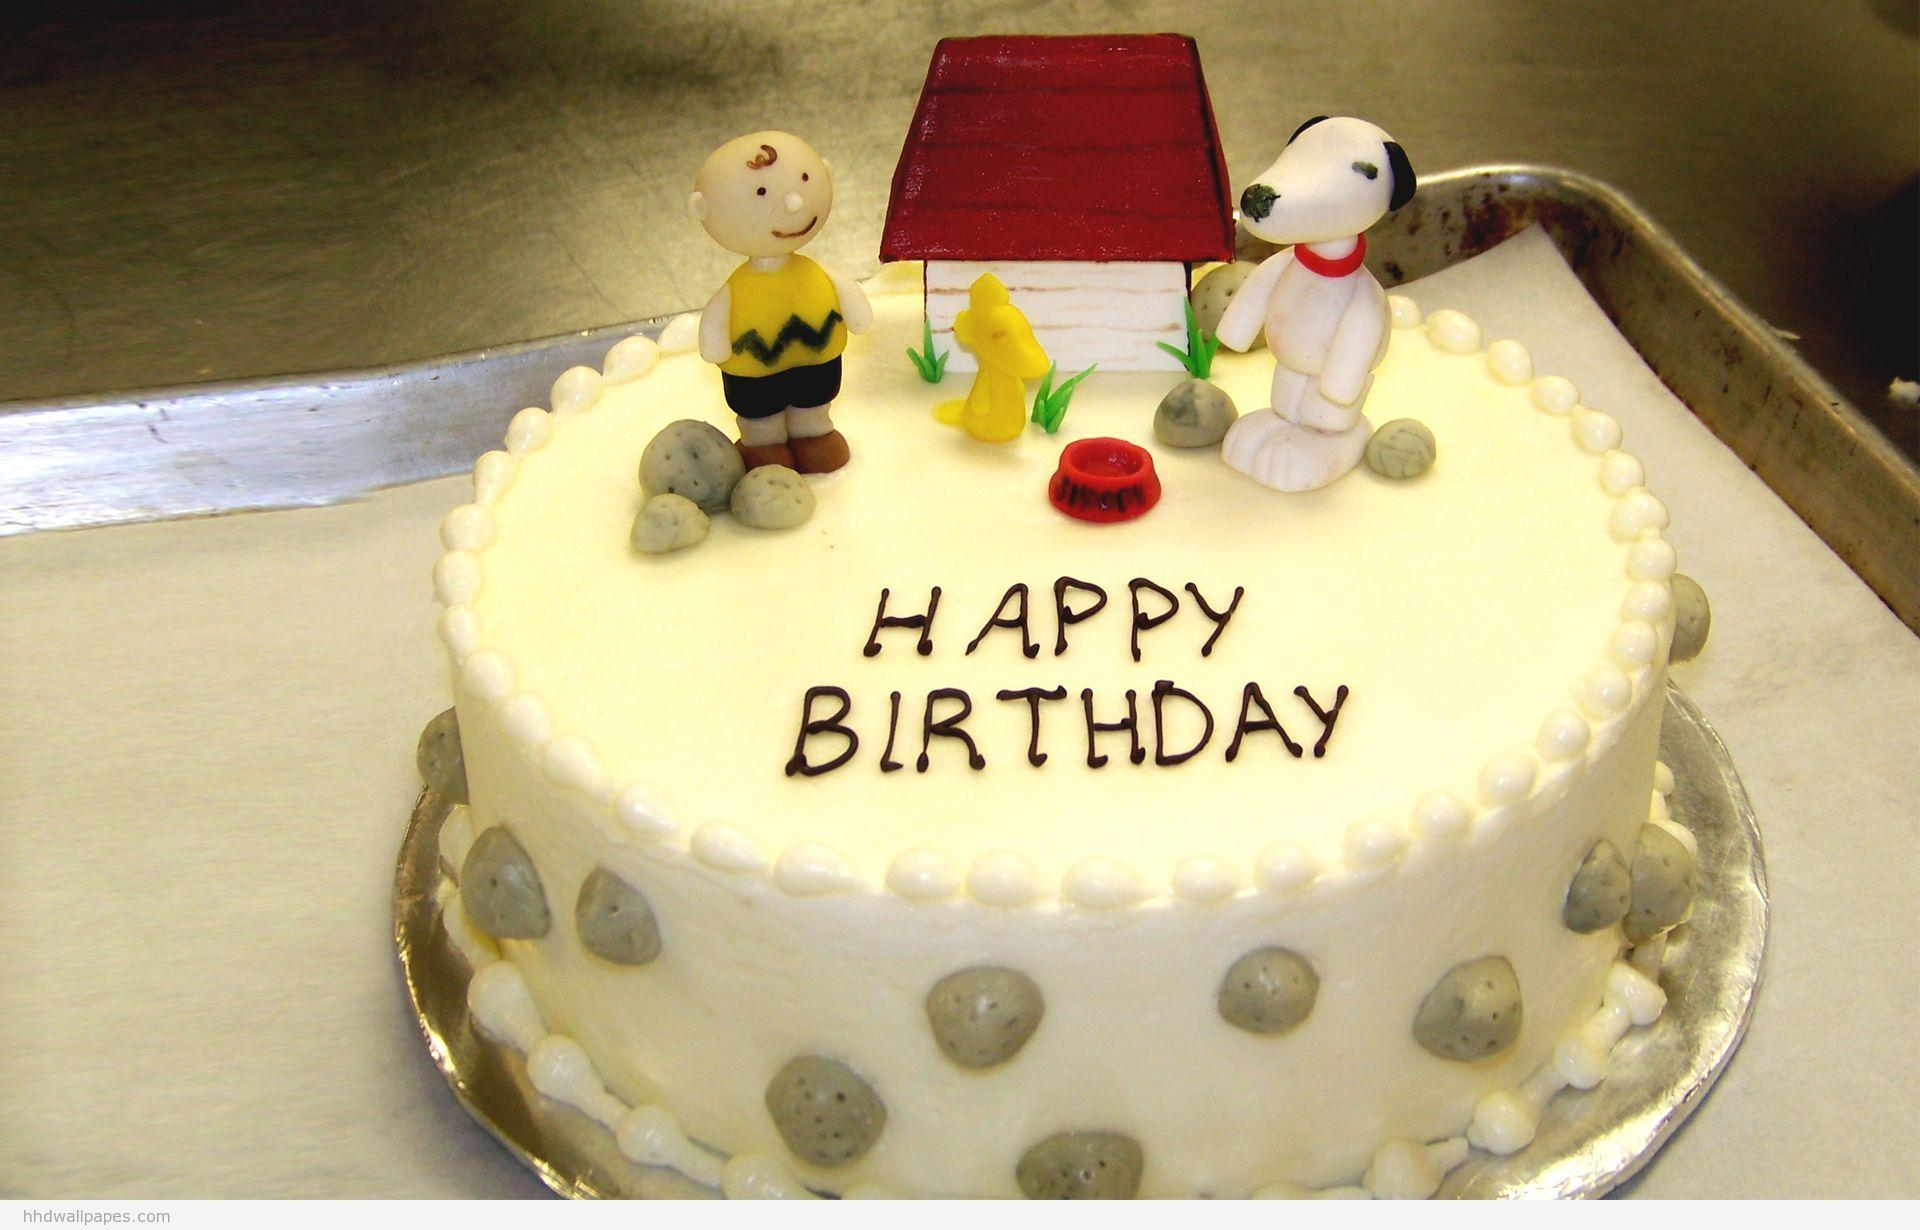 Birthday Cake Images With Name Deep : Happy Birthday Wallpapers With Name - Wallpaper Cave